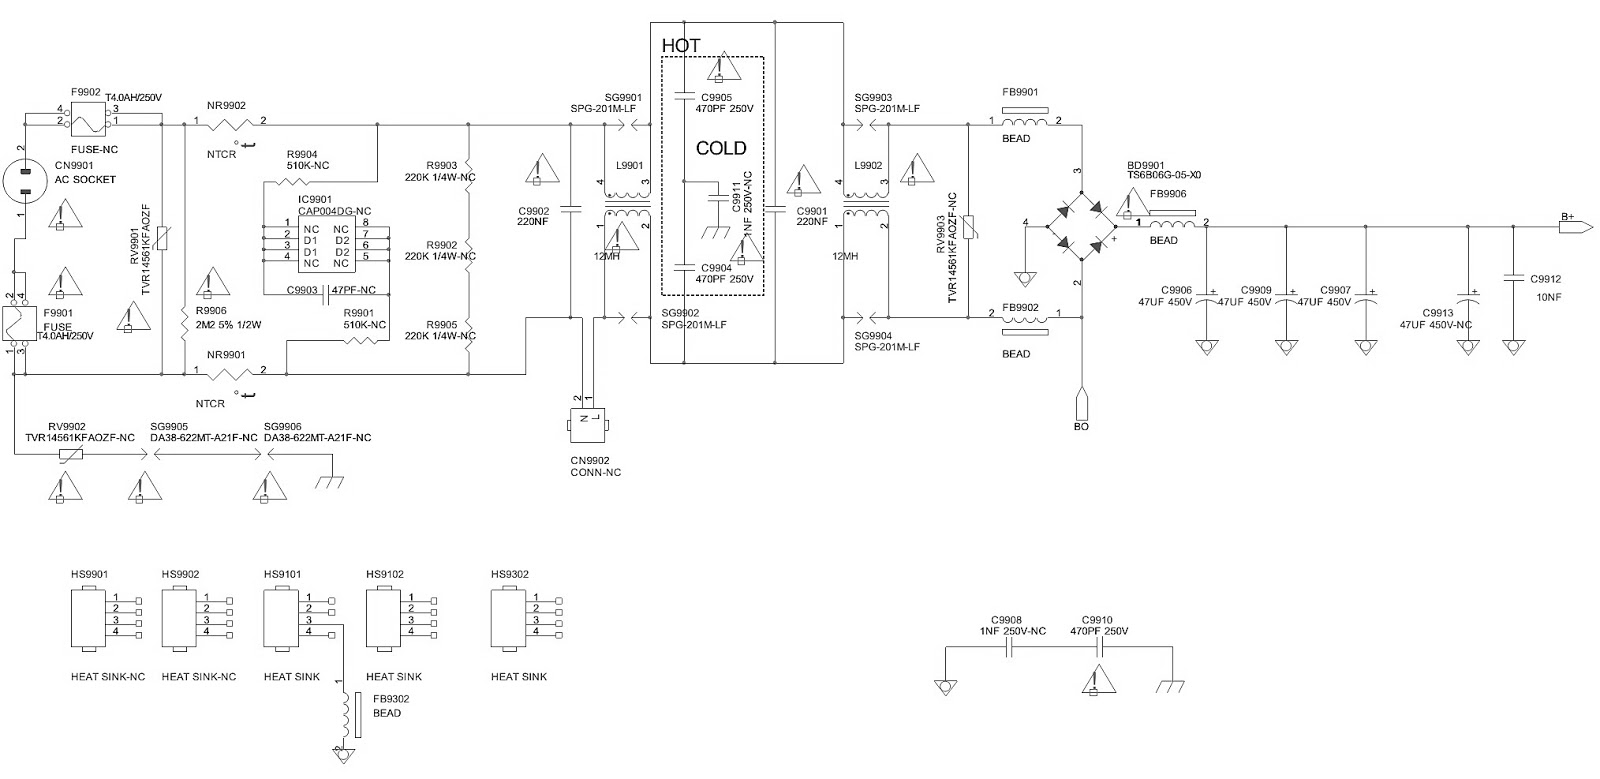 Philips 42pfl4007g78 Smps Schematic 715g5194 Psu 32inch And Ac Led Circuit Diagram Side